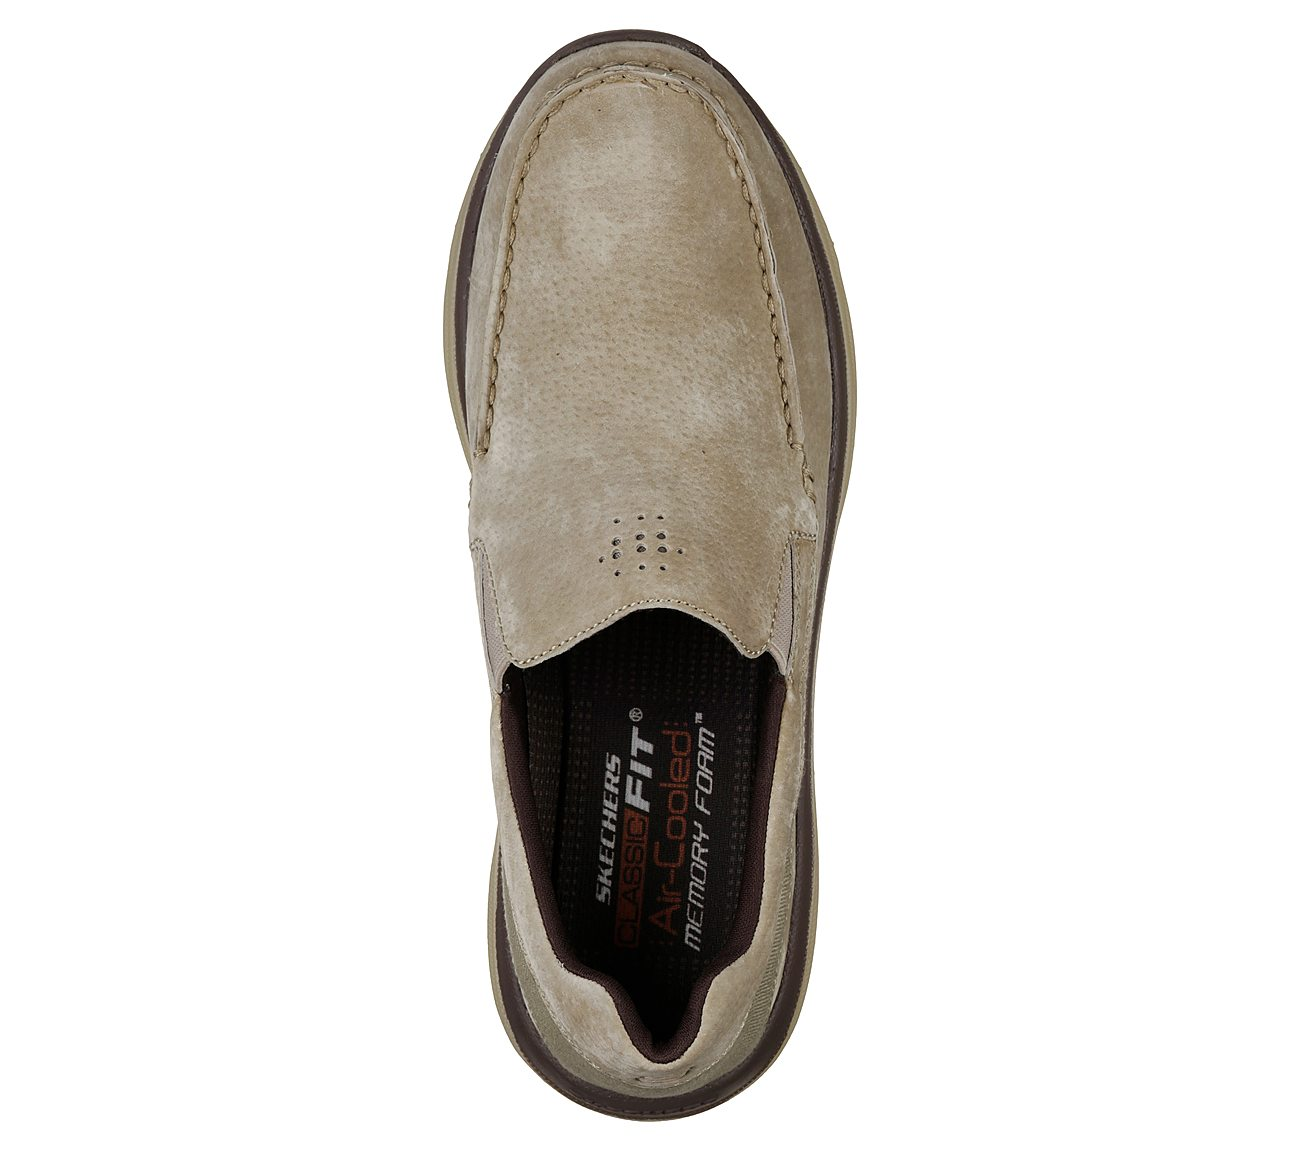 f6427ee74dc Buy SKECHERS Harsen - Ortego USA Casuals Shoes only  70.00